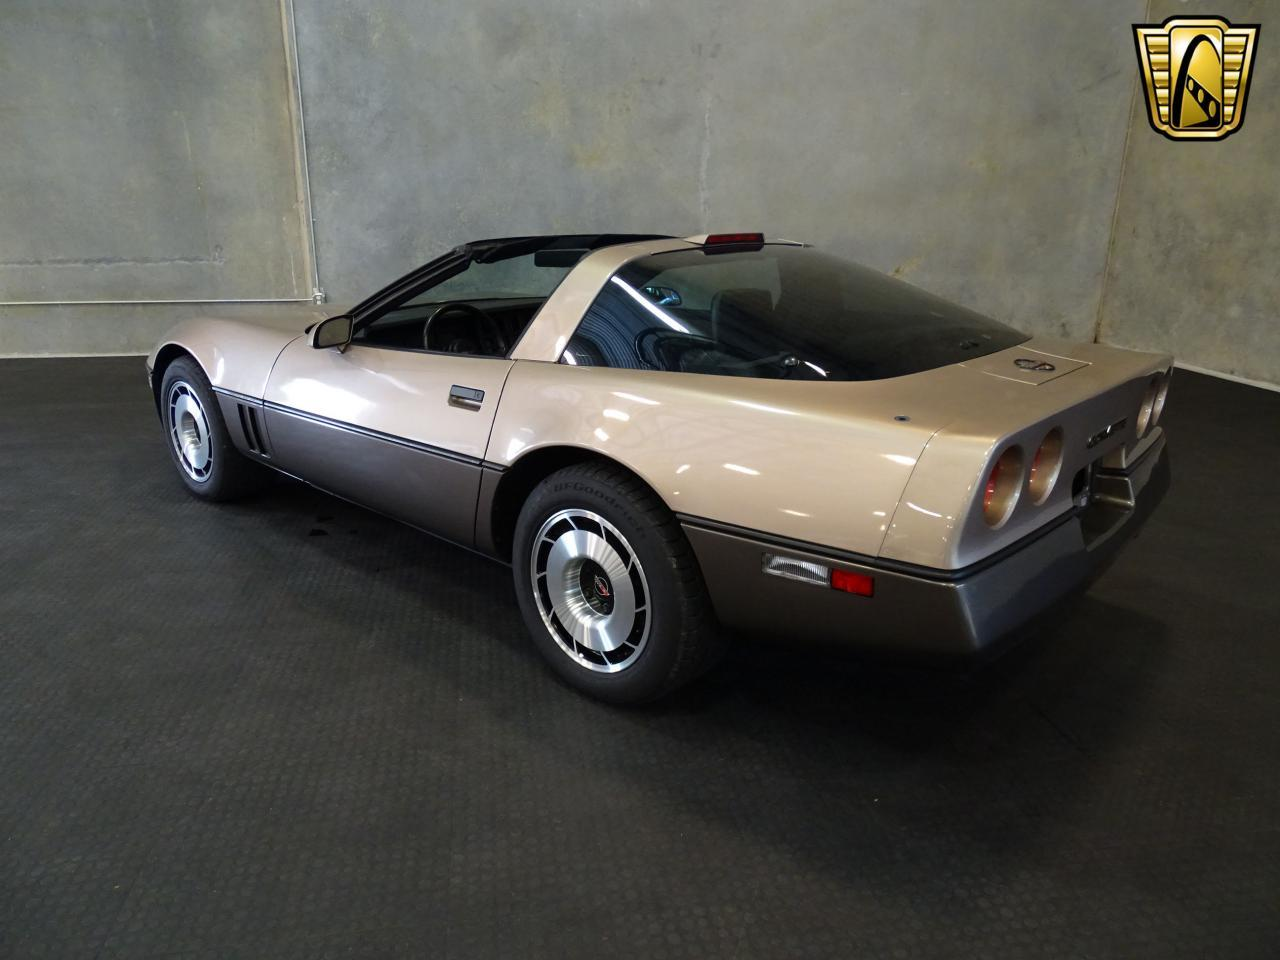 Large Picture of 1985 Corvette - $15,995.00 Offered by Gateway Classic Cars - Tampa - L3PW